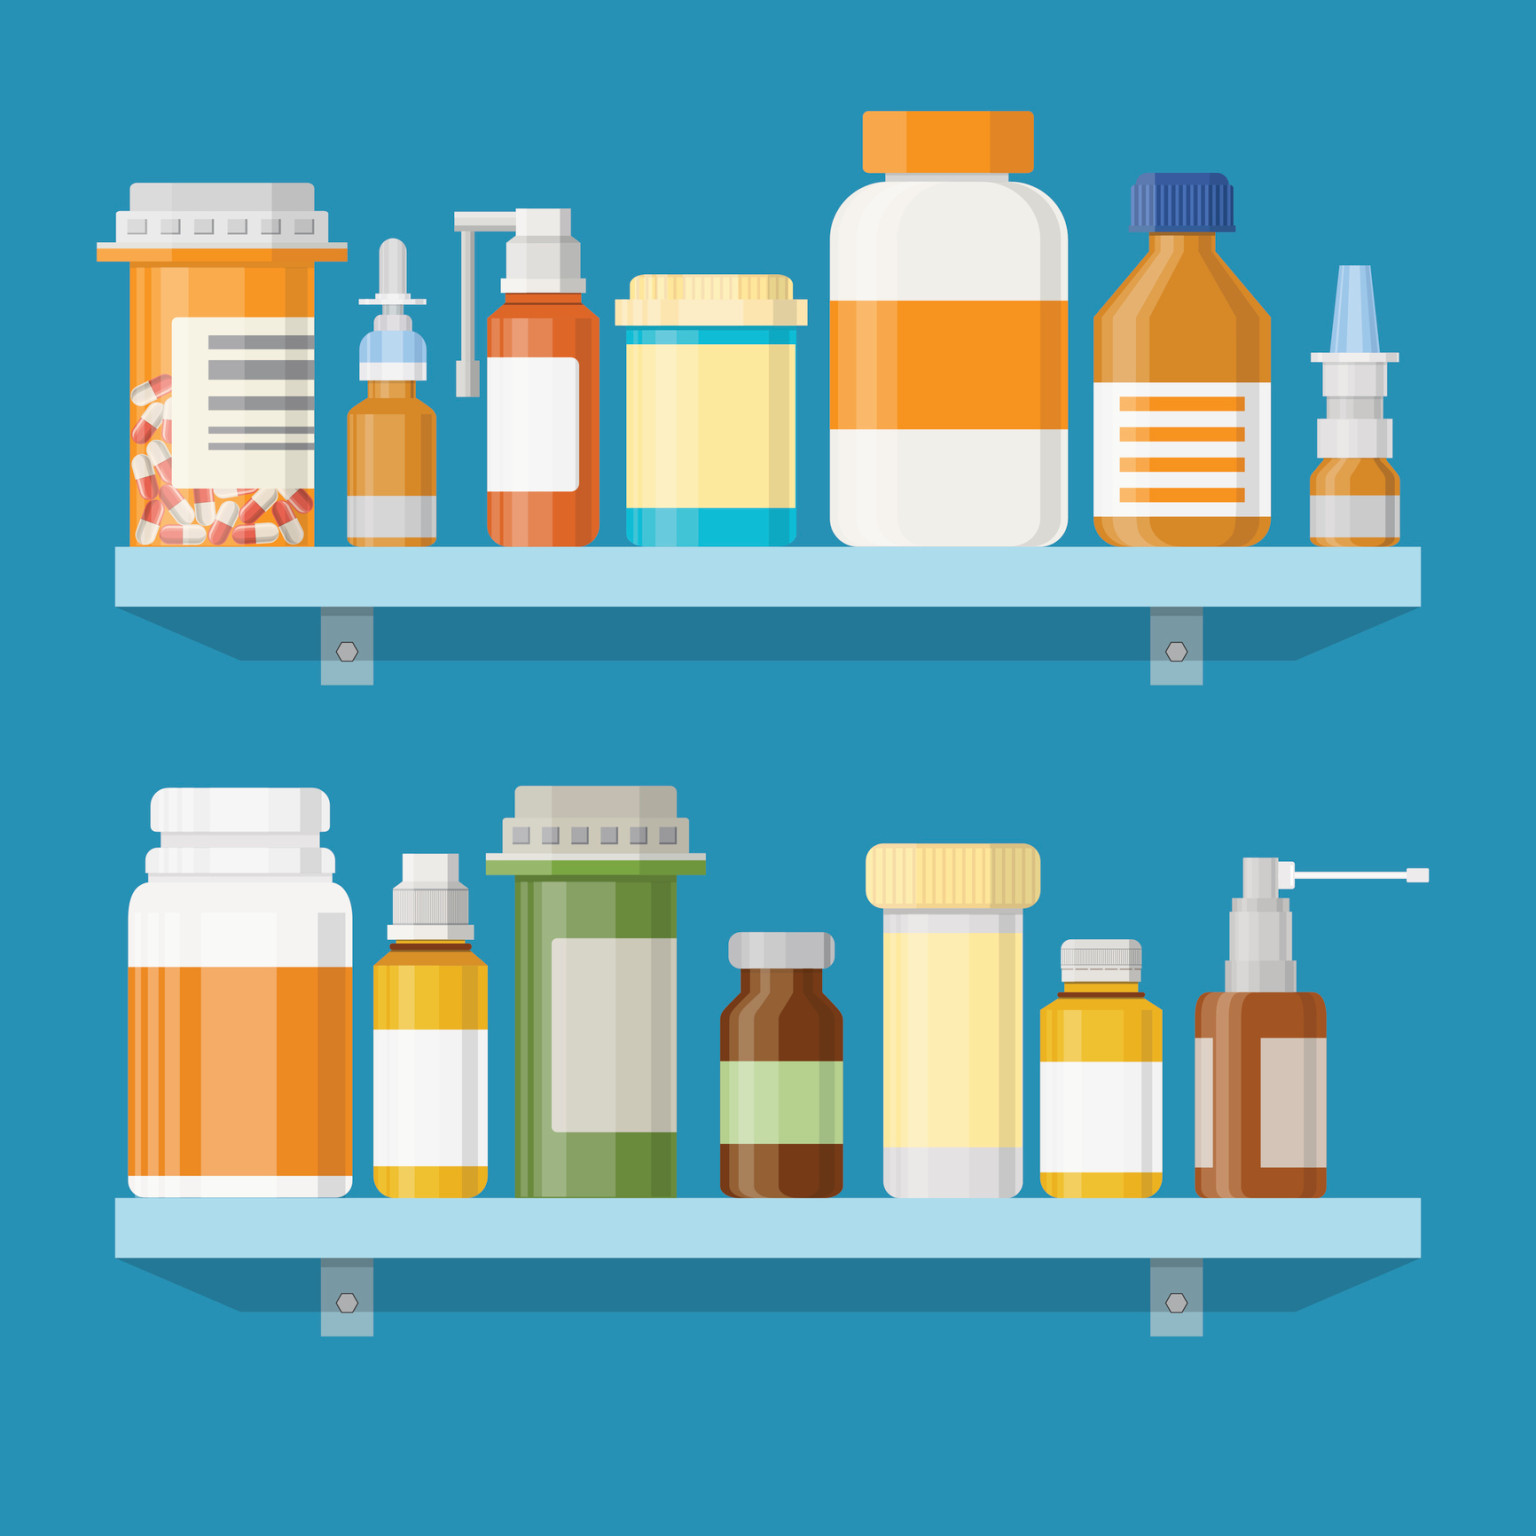 Heat and medication: Pharmacists share tips to keep your.